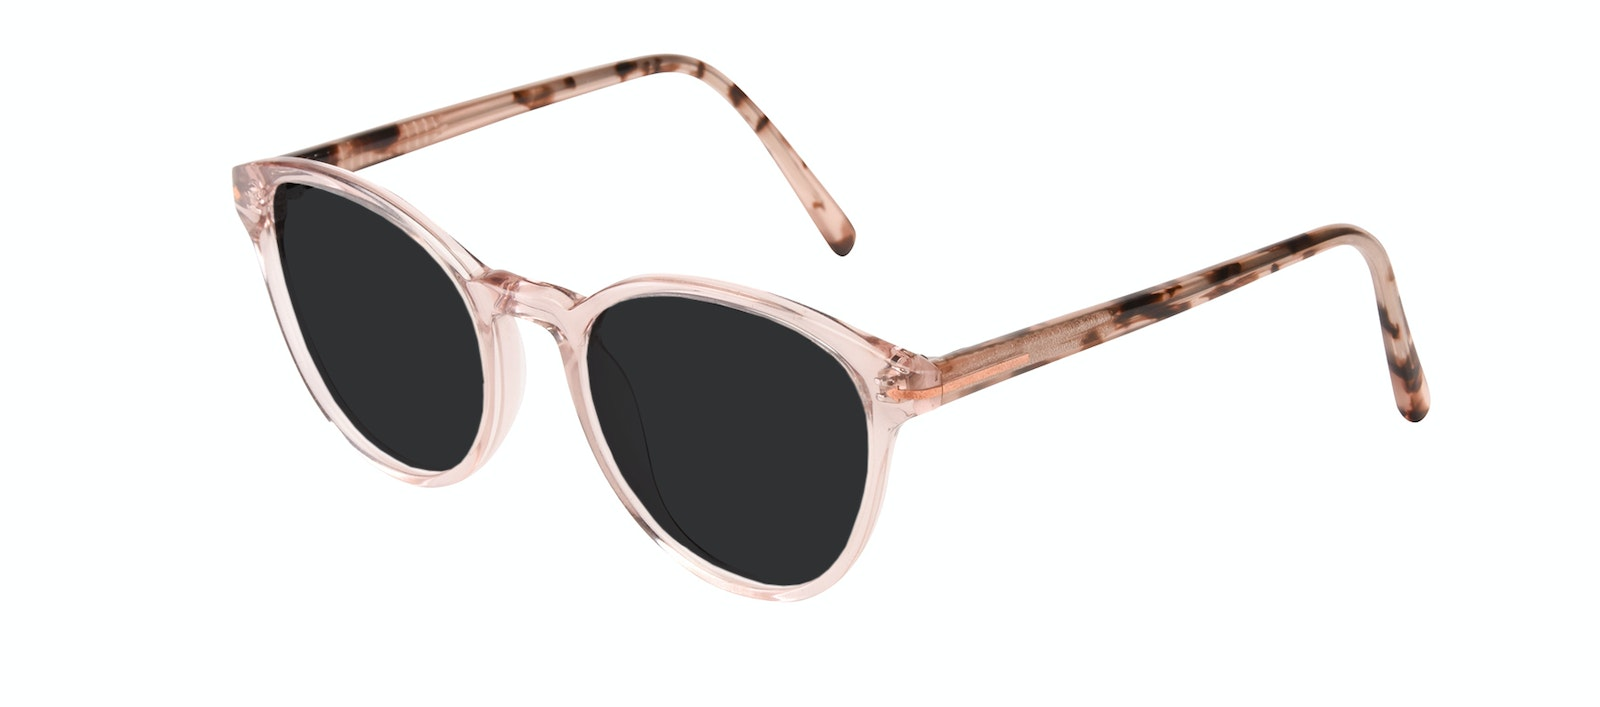 Affordable Fashion Glasses Round Sunglasses Women London Blush Tilt